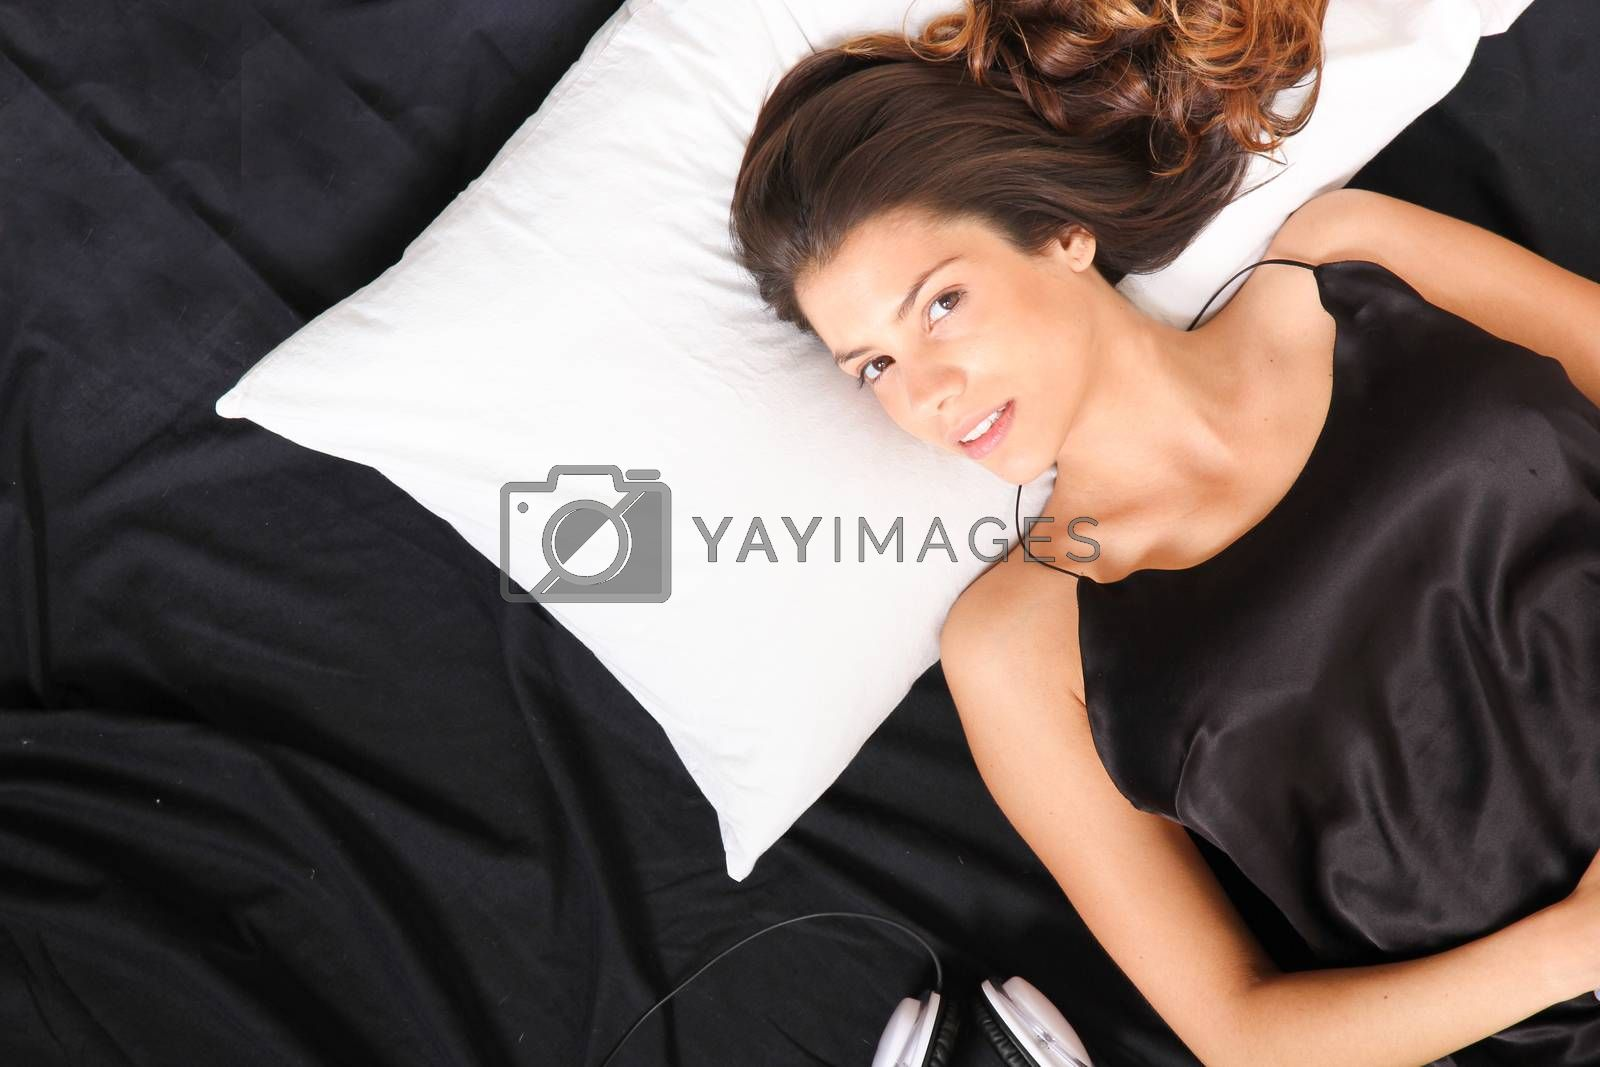 A young girl laying in bed, smiling with headsets